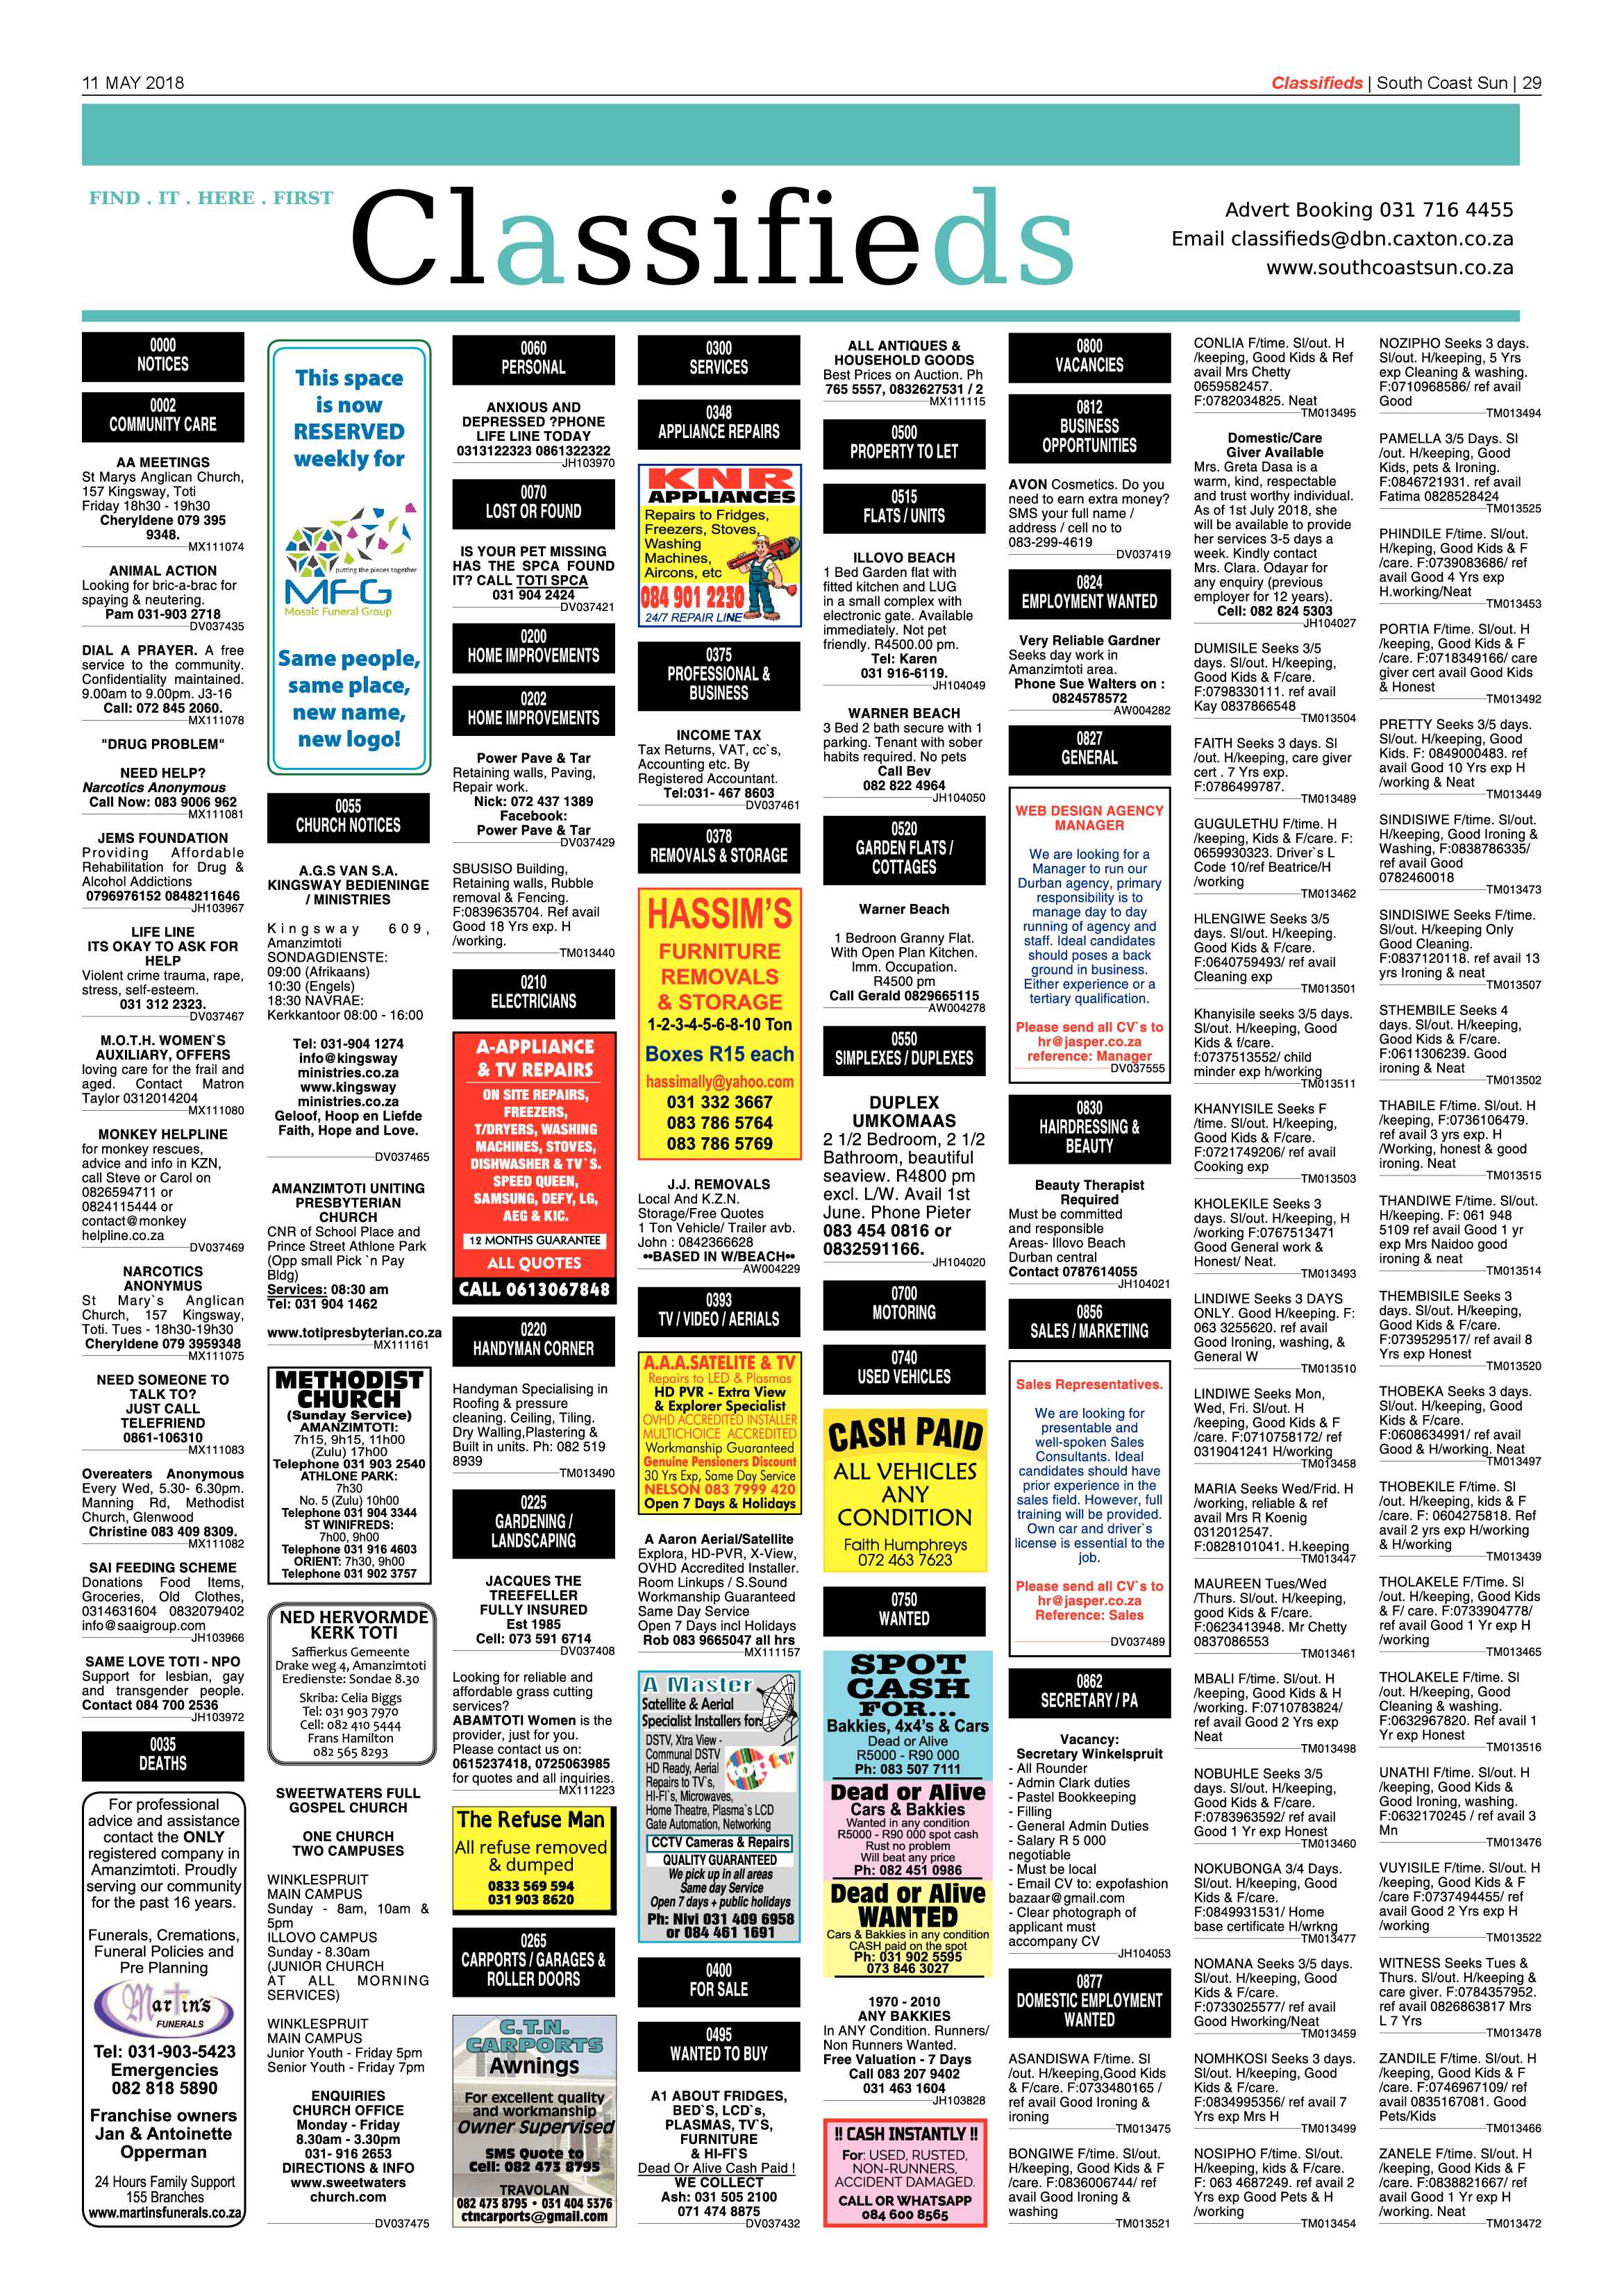 11-may-2018-epapers-page-29